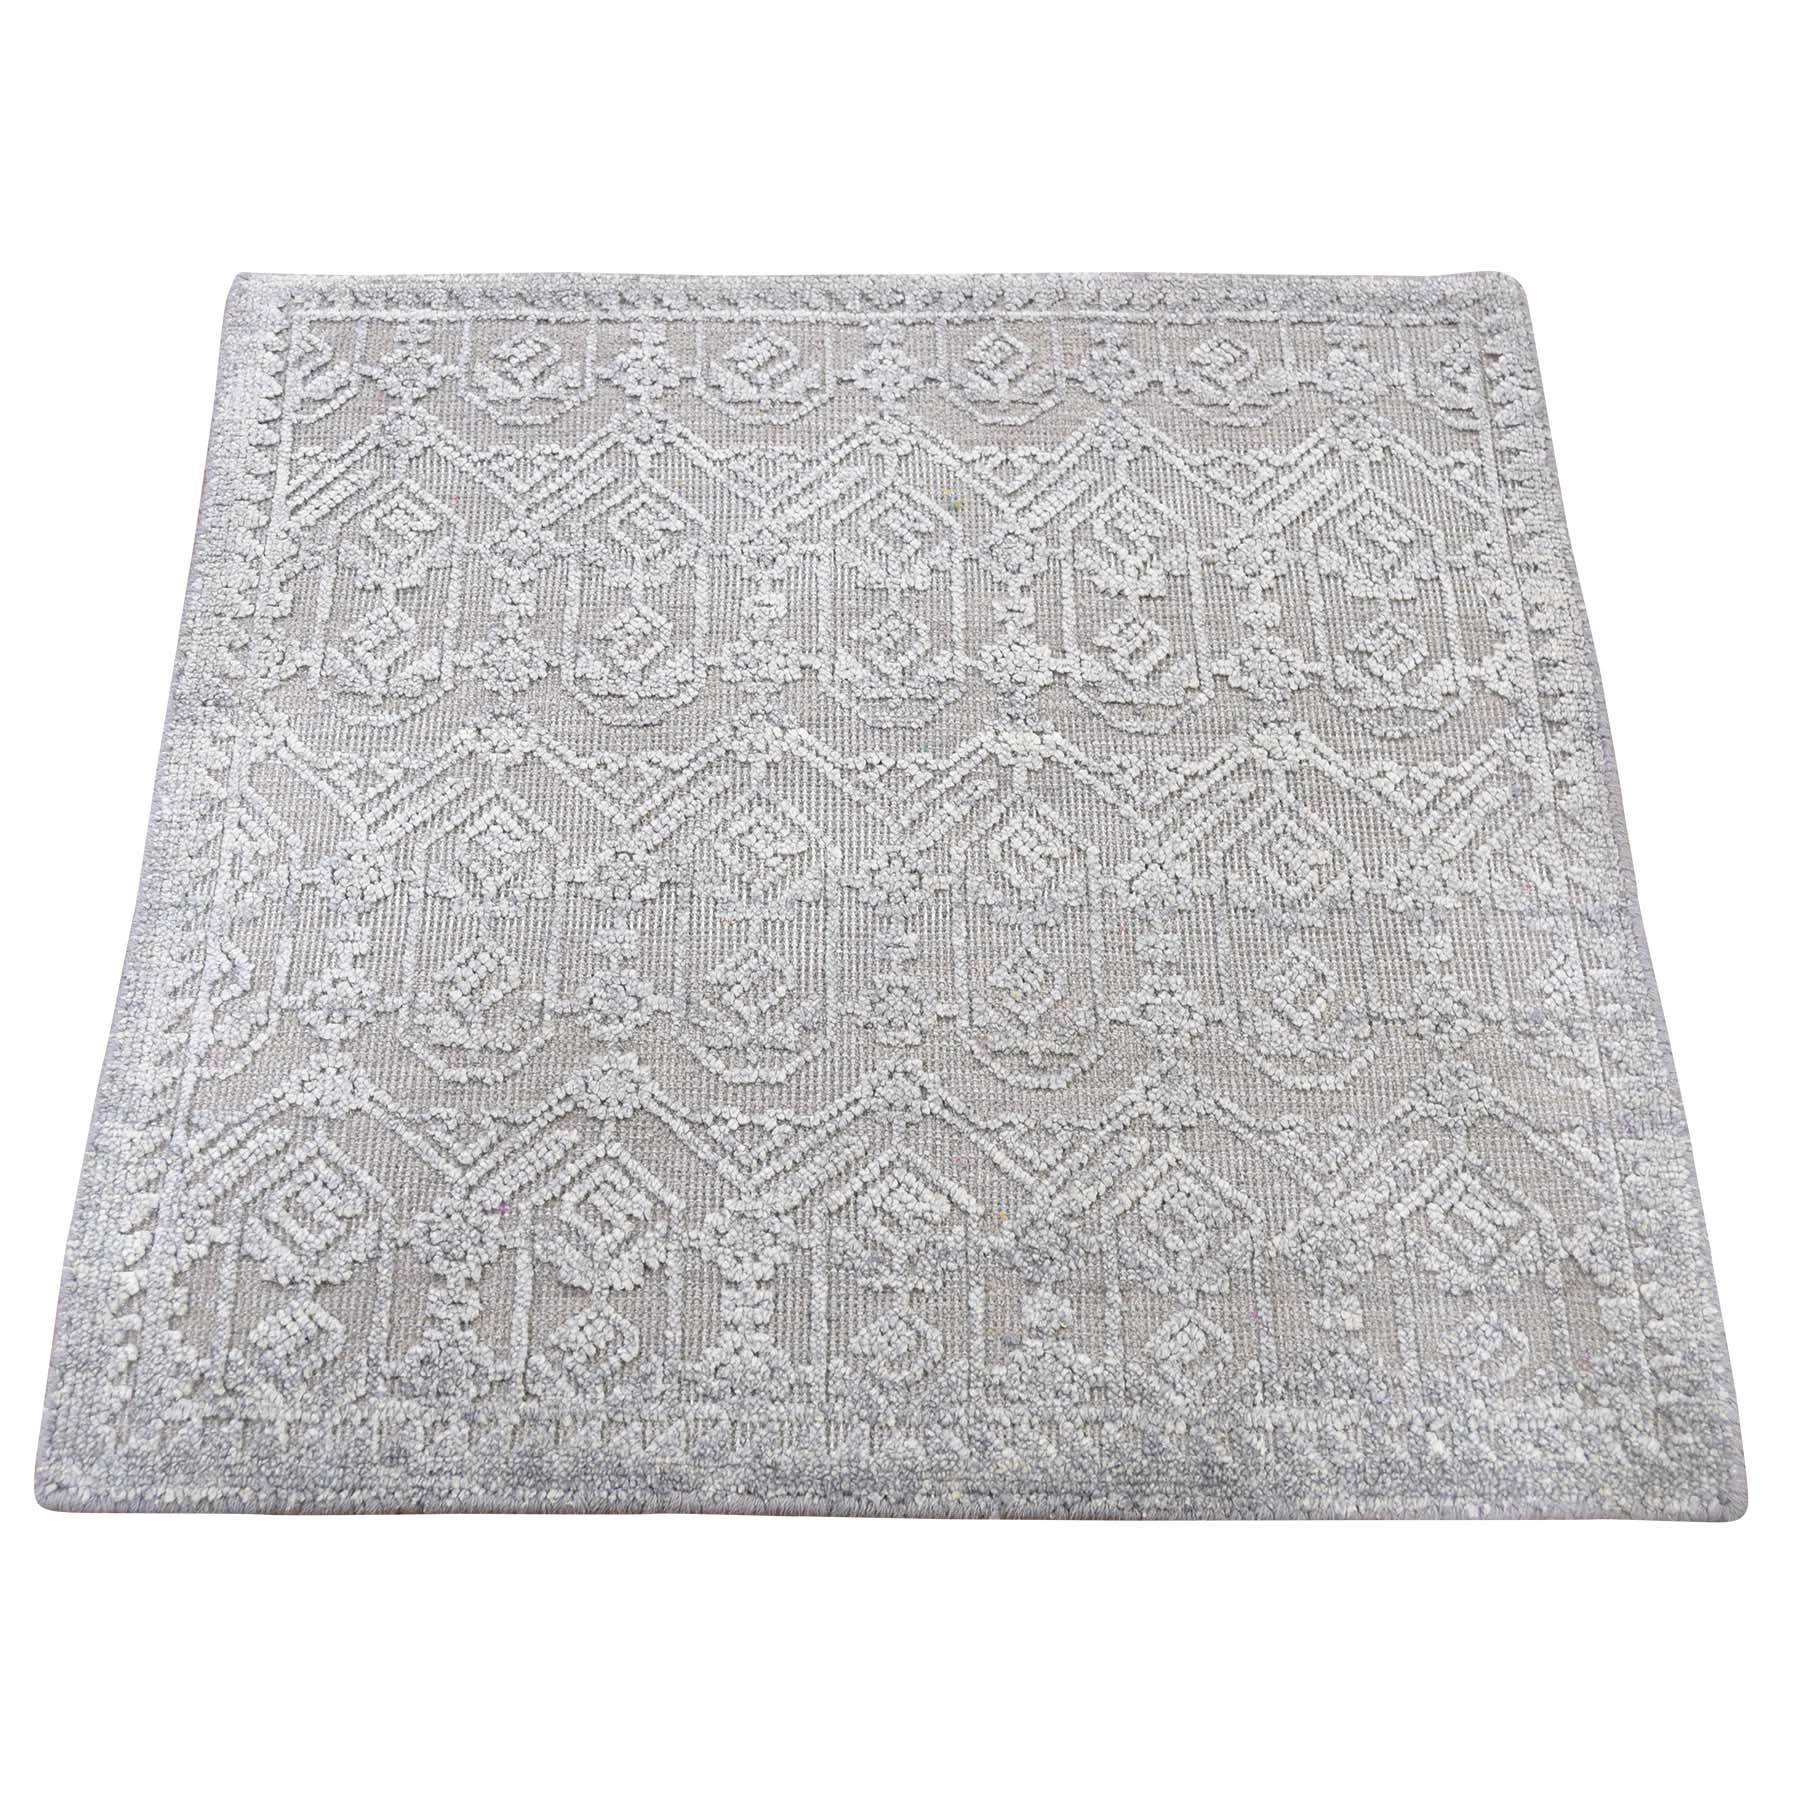 """2'X2'1"""" Silk With Textured Wool Hand-Knotted Oriental Sample Rug moadd6e9"""